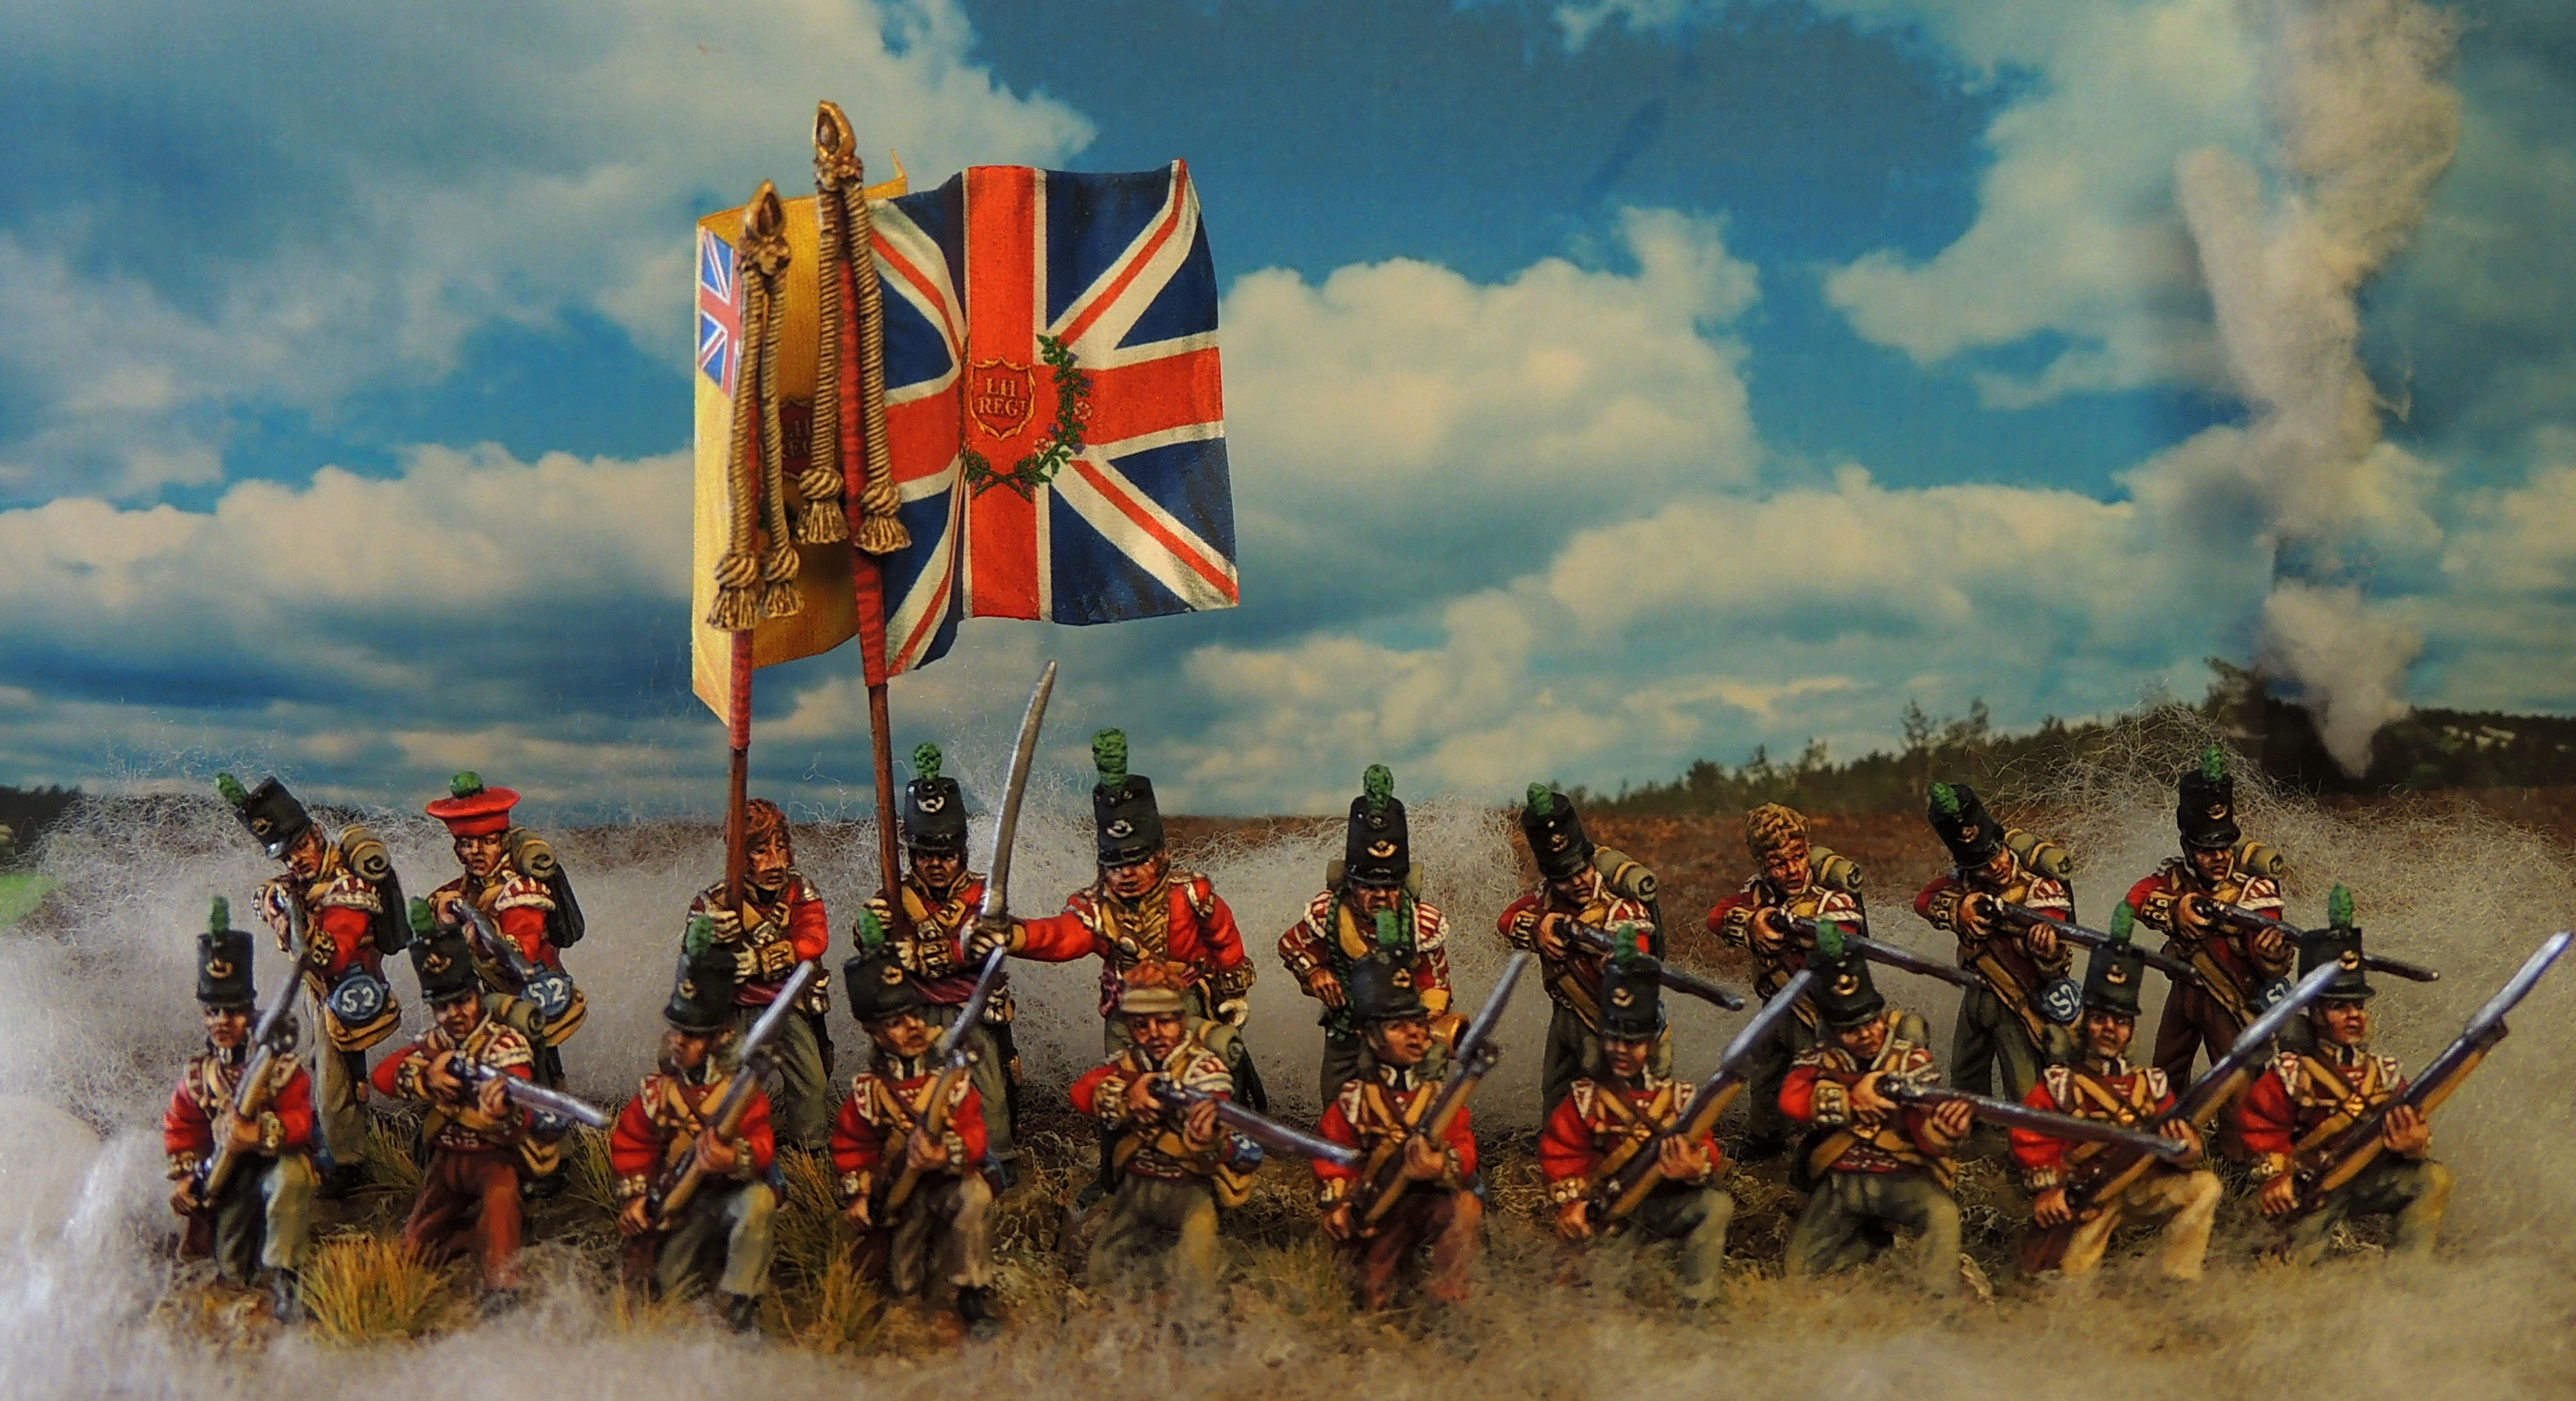 52nd british light infantry Painted by Francesco Thau